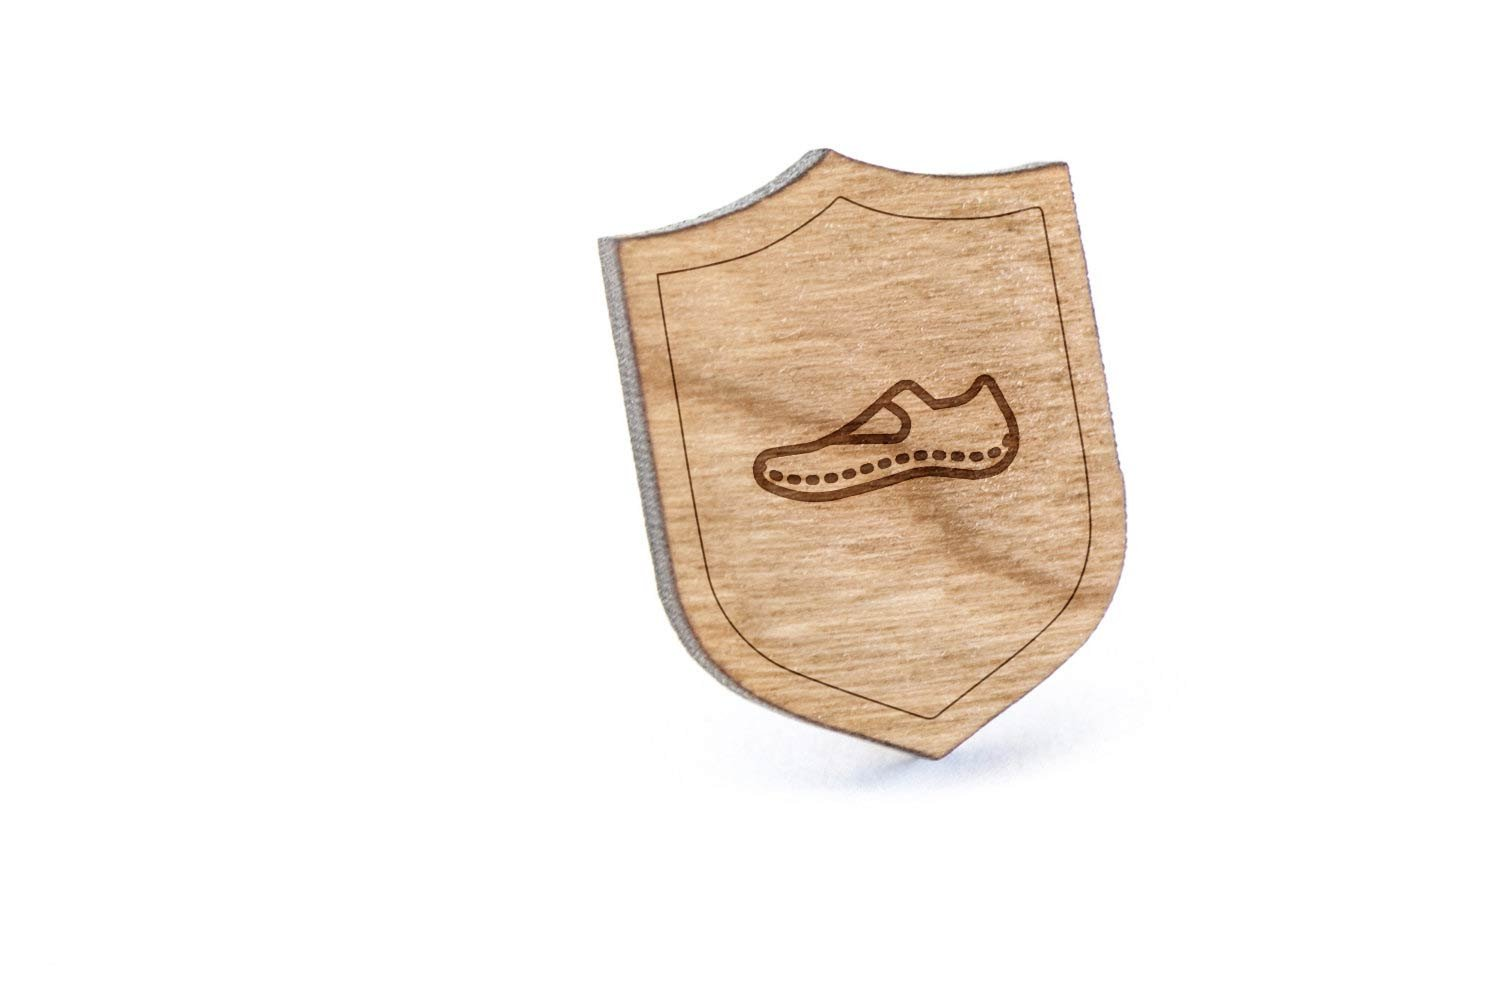 Indoor Boots Lapel Pin, Wooden Pin And Tie Tack | Rustic And Minimalistic Groomsmen Gifts And Wedding Accessories